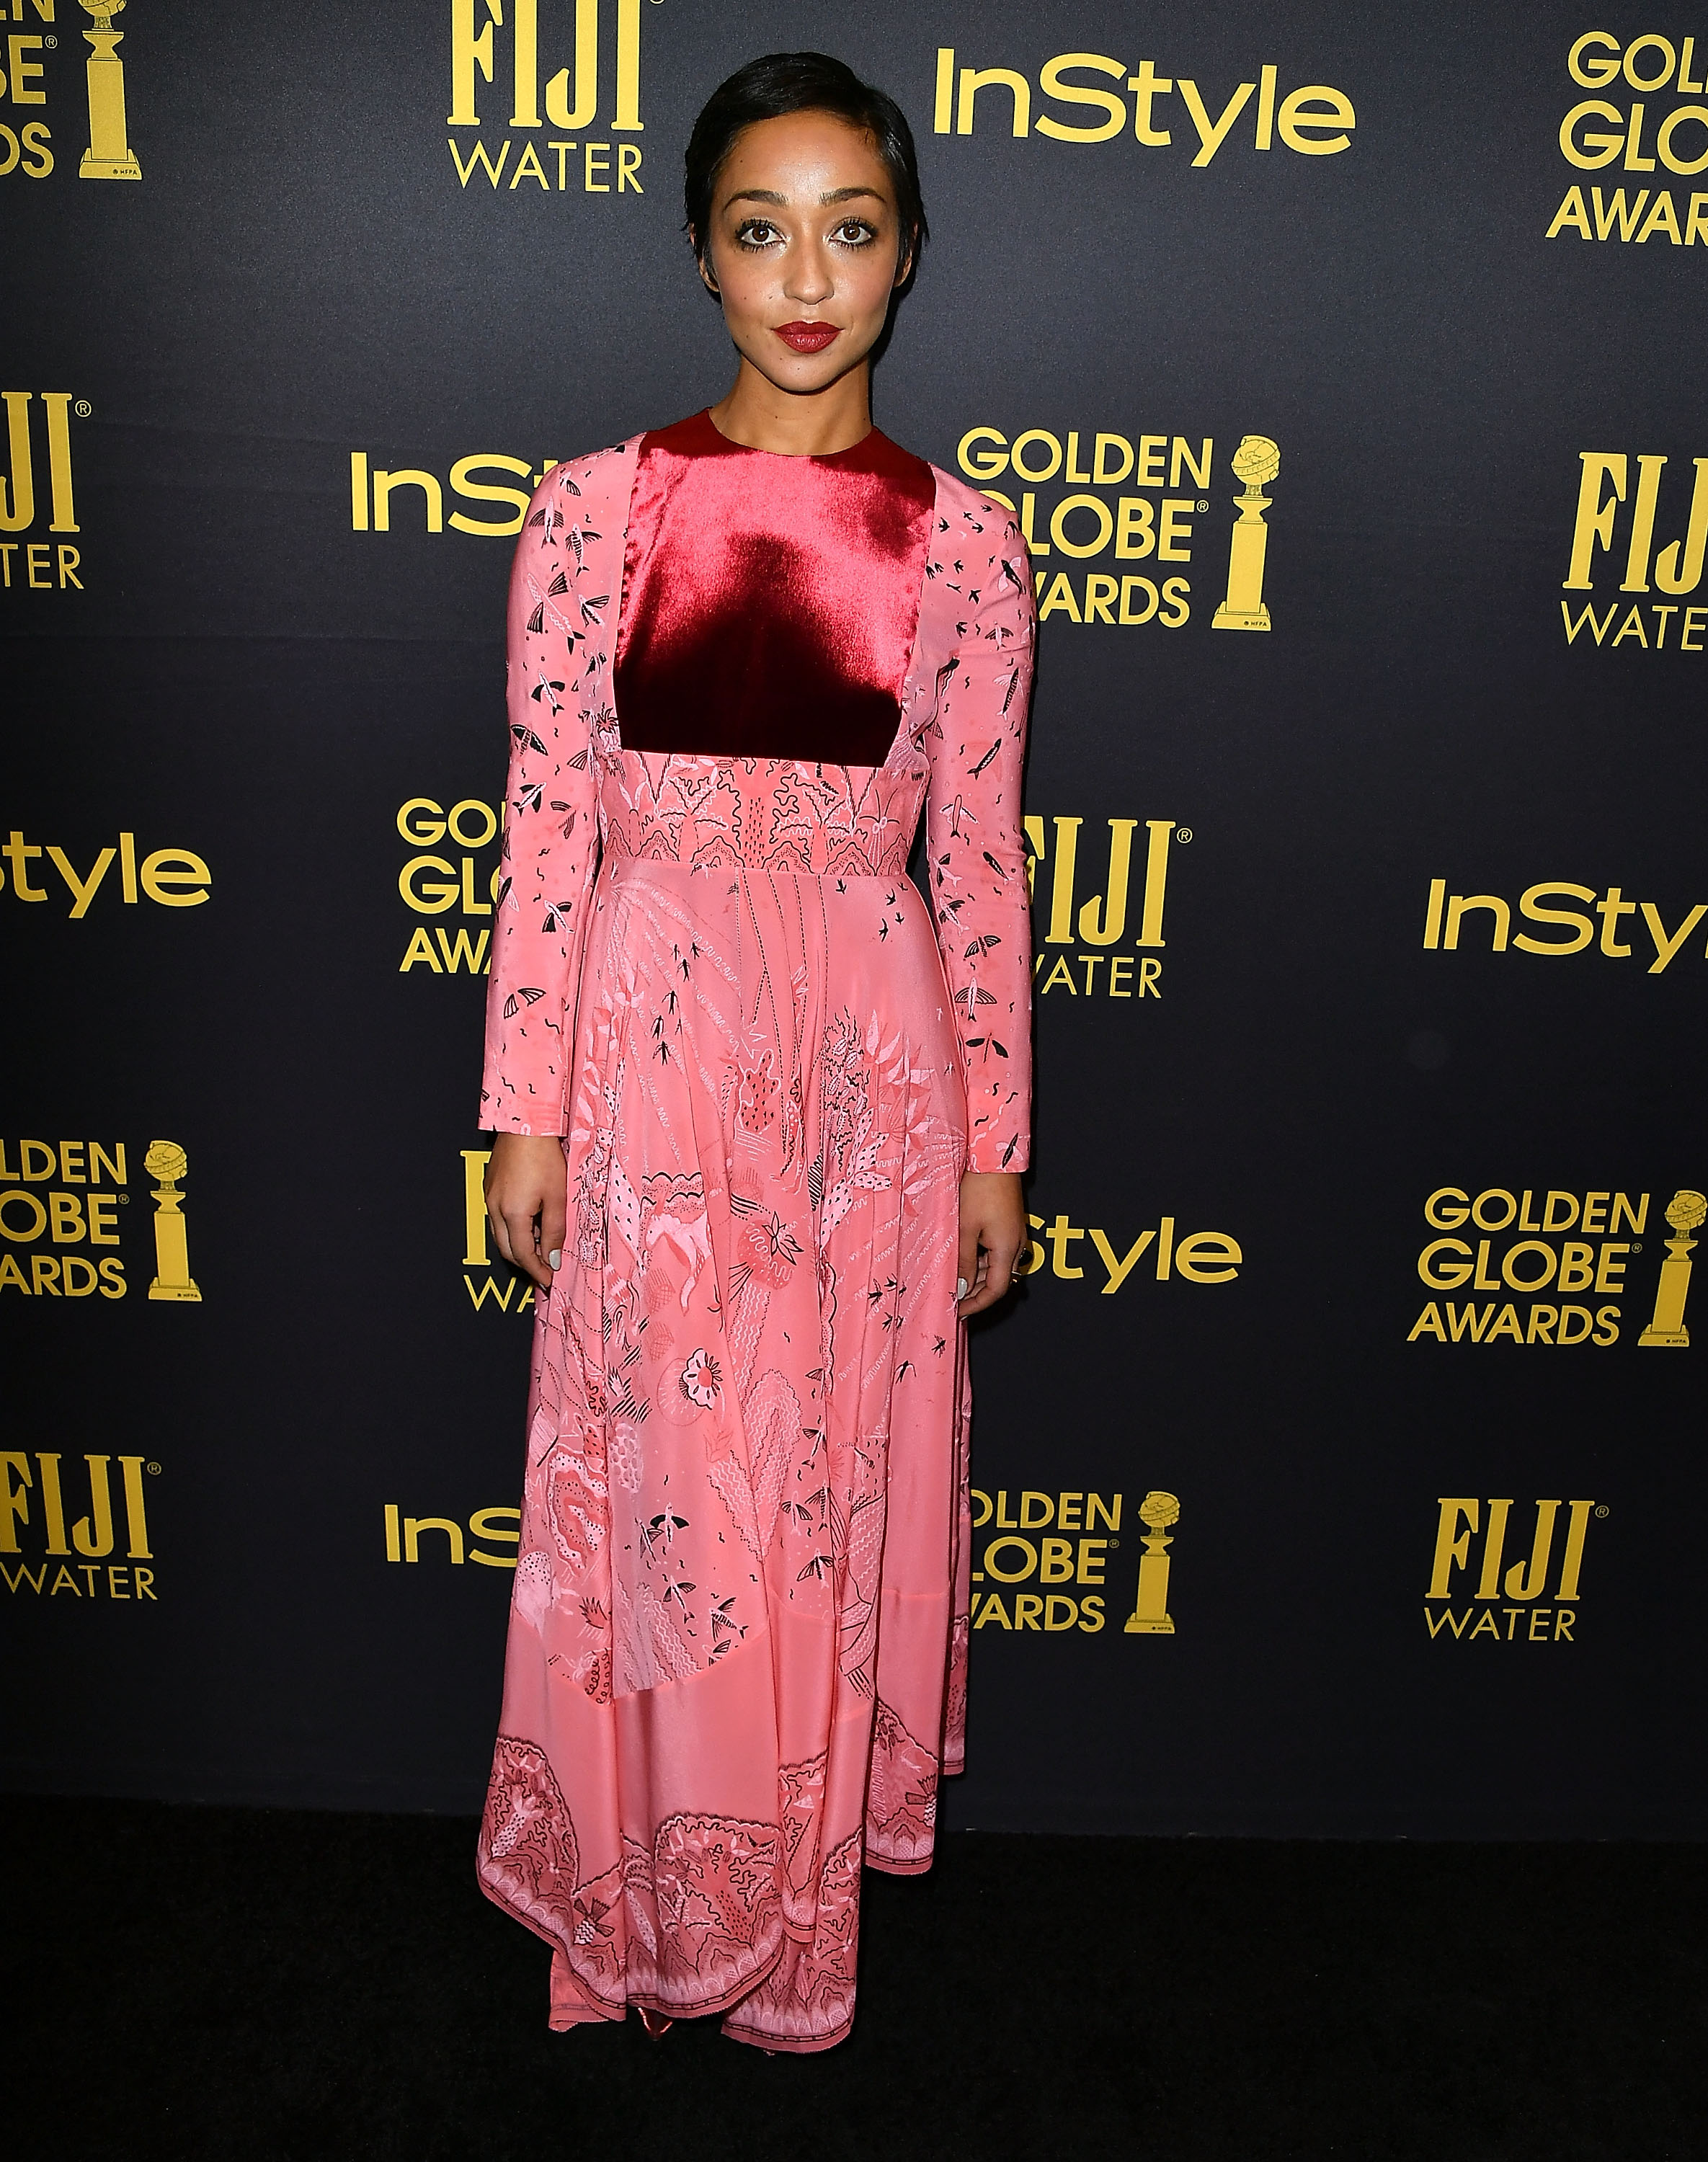 Hollywood Foreign Press Association And InStyle Celebrate The 2017 Golden Globe Award Season